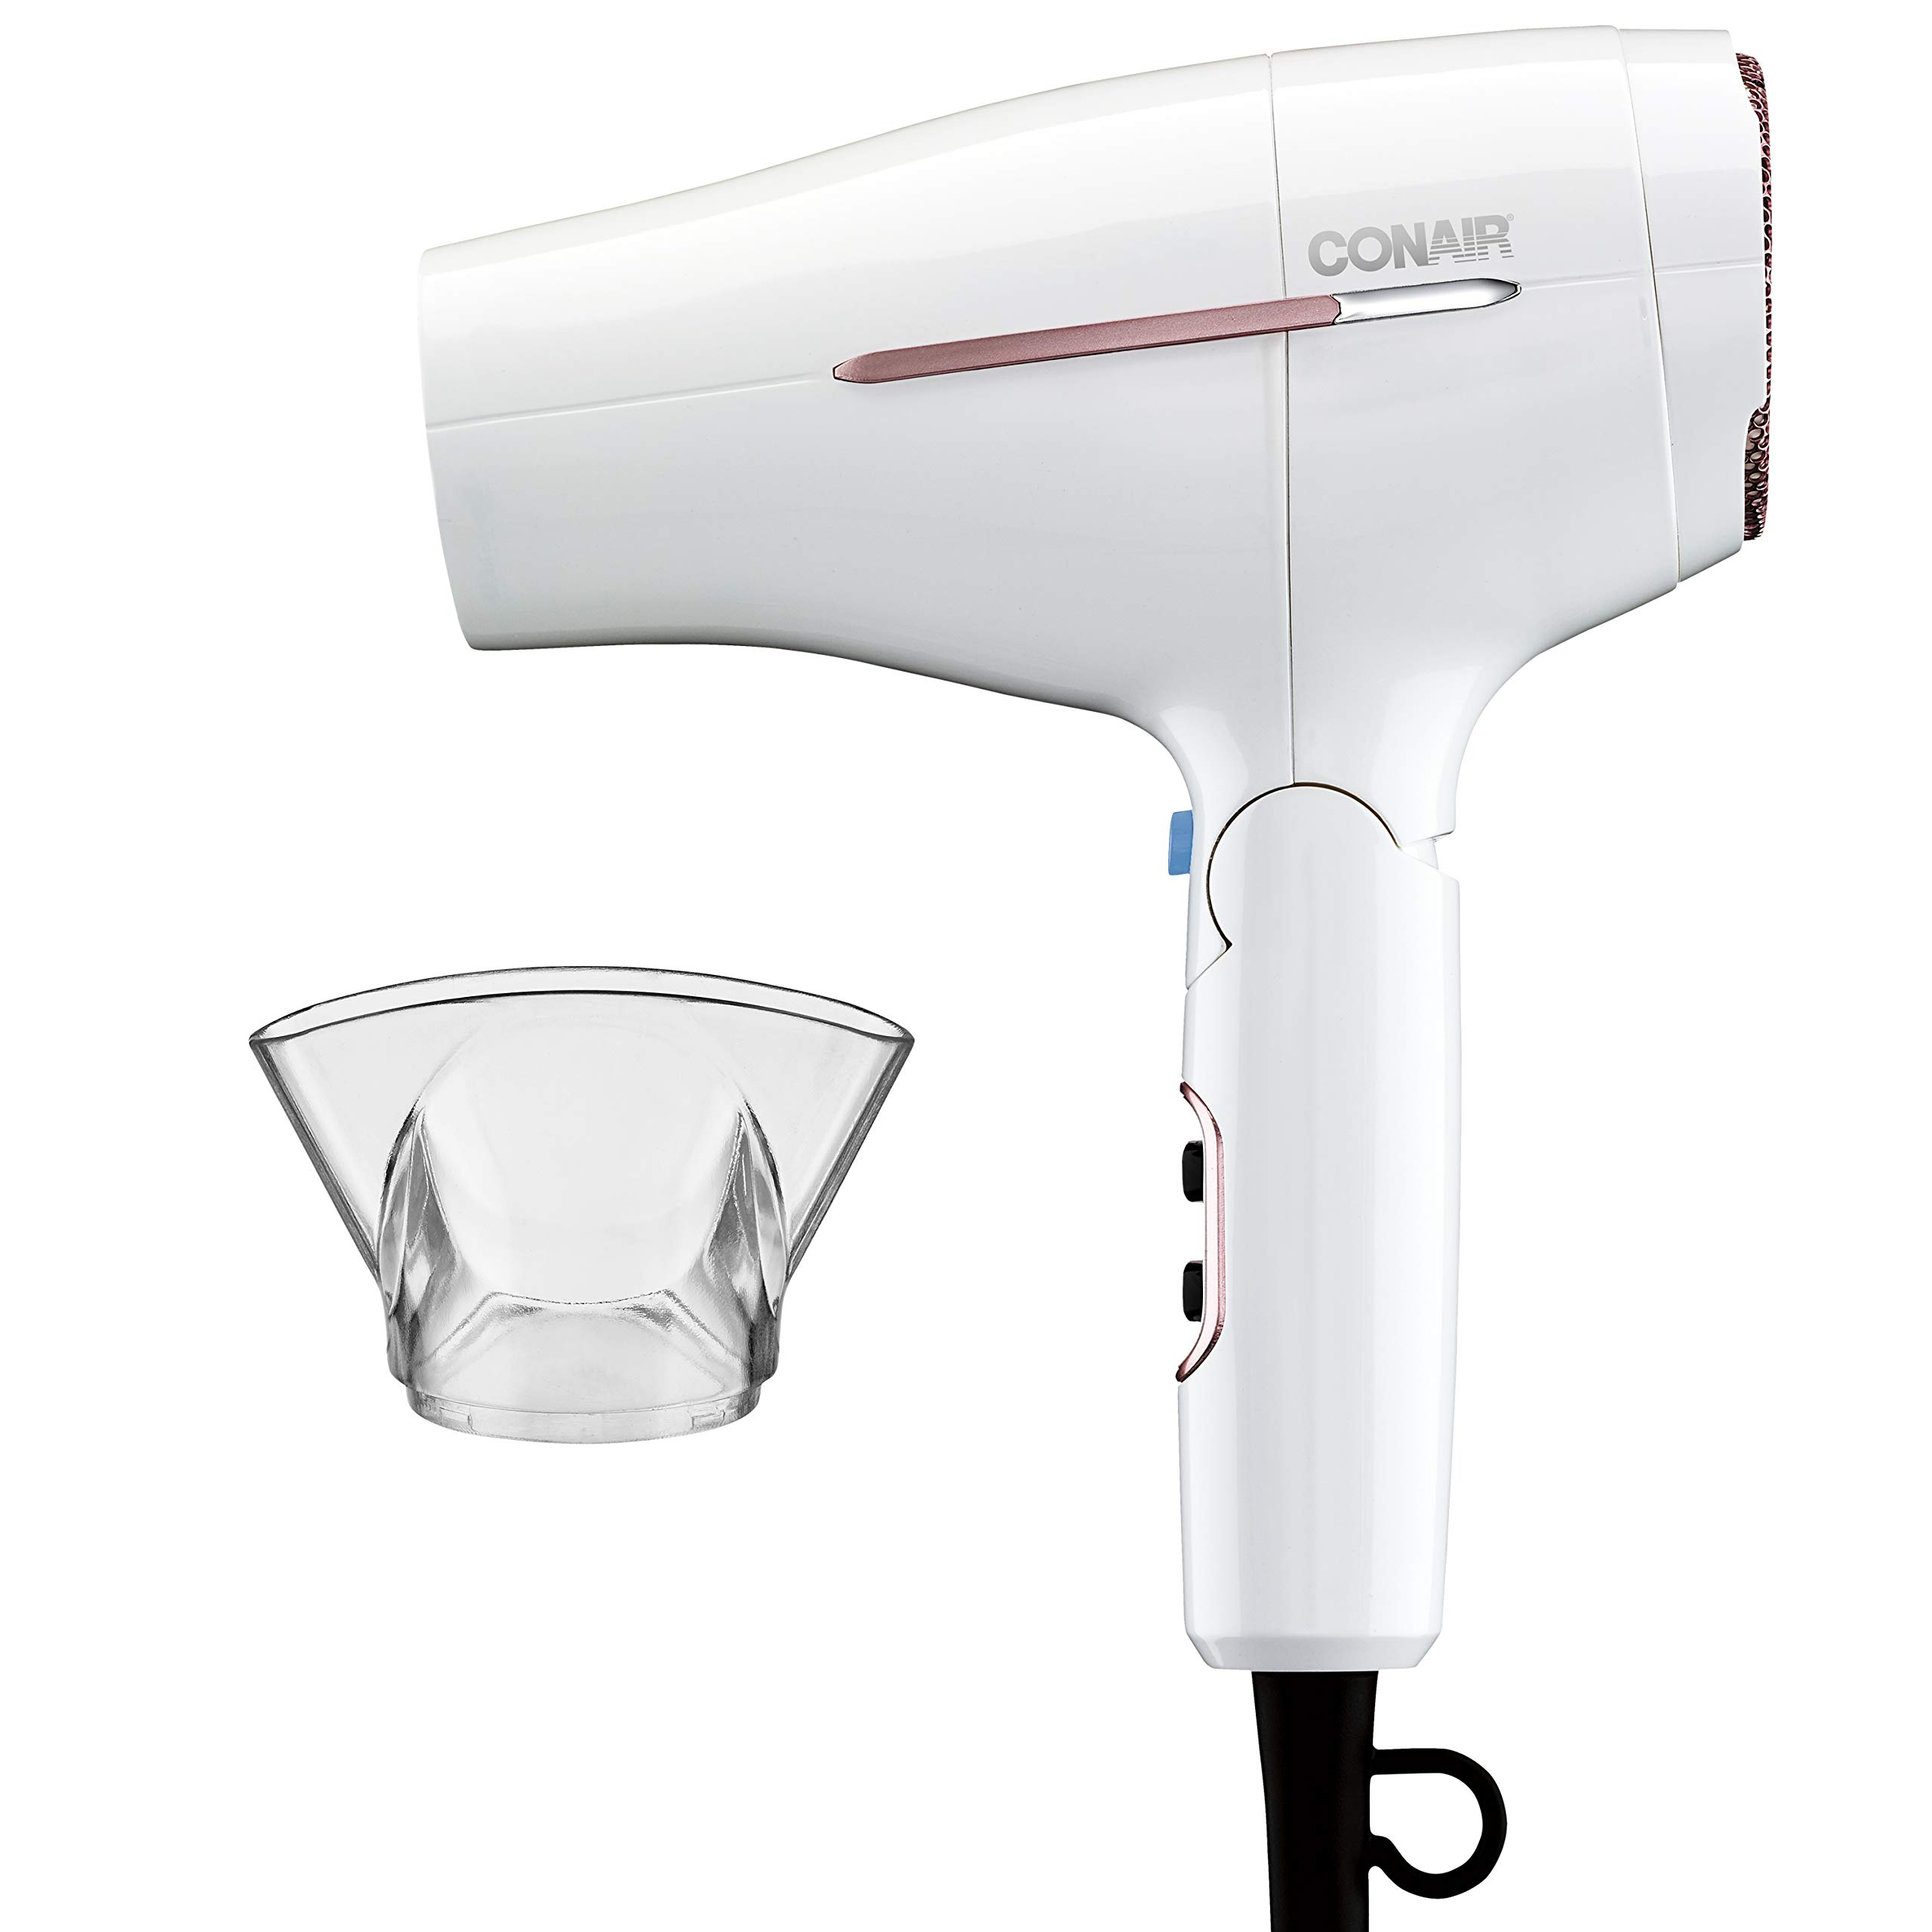 Conair 1875 Watt Worldwide Travel Hair Dryer with Smart Voltage Technology and Folding Handle by Conair